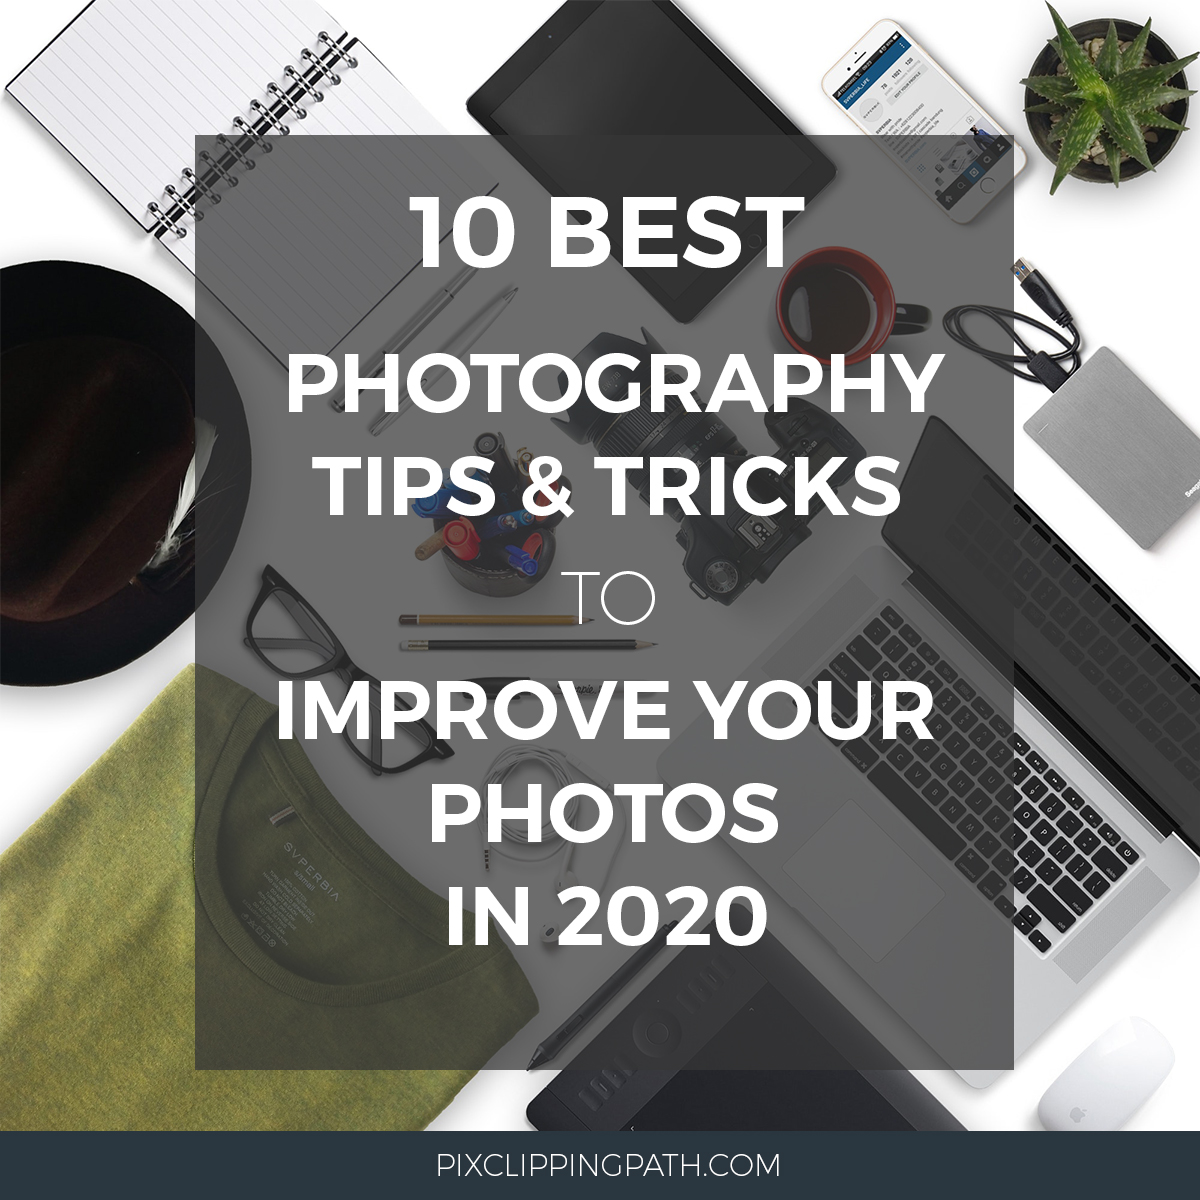 10 Best Photography Tips & Tricks to improve your image in 2020